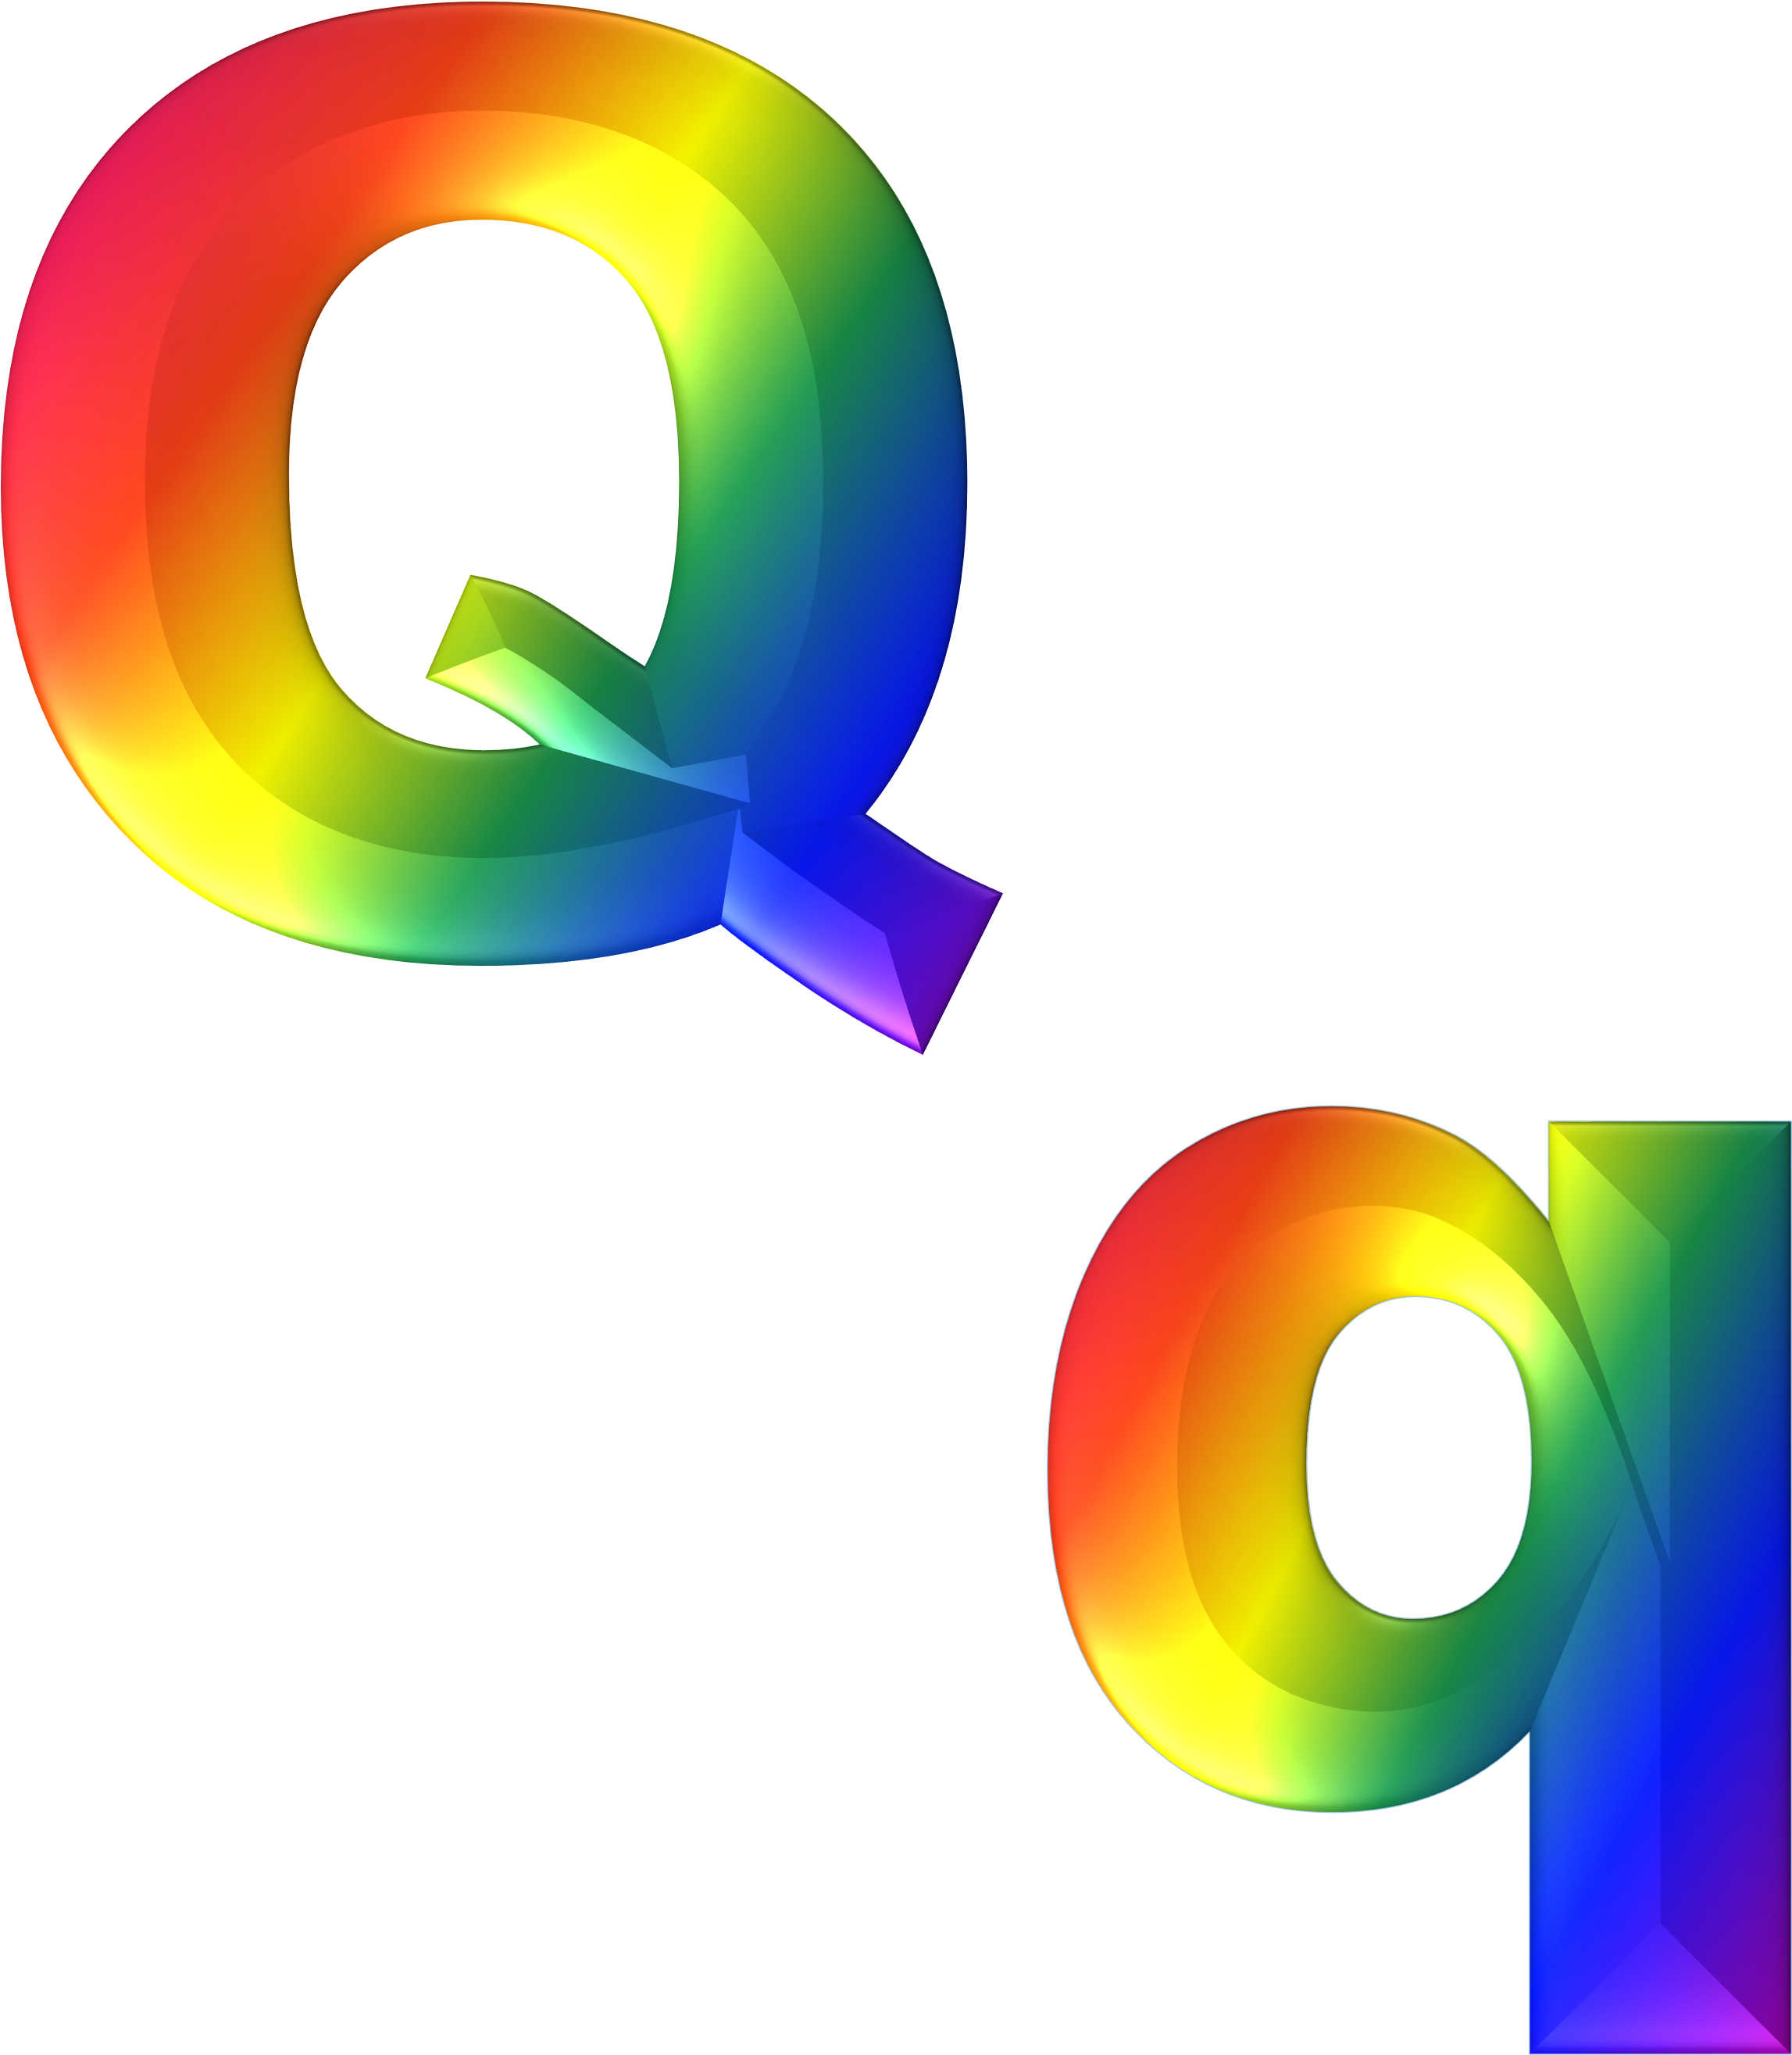 Transparent letter clipart - Colorful Big And Small Q Letters Of The Alphabet Clipart - 3d Letters I Alphabet Png